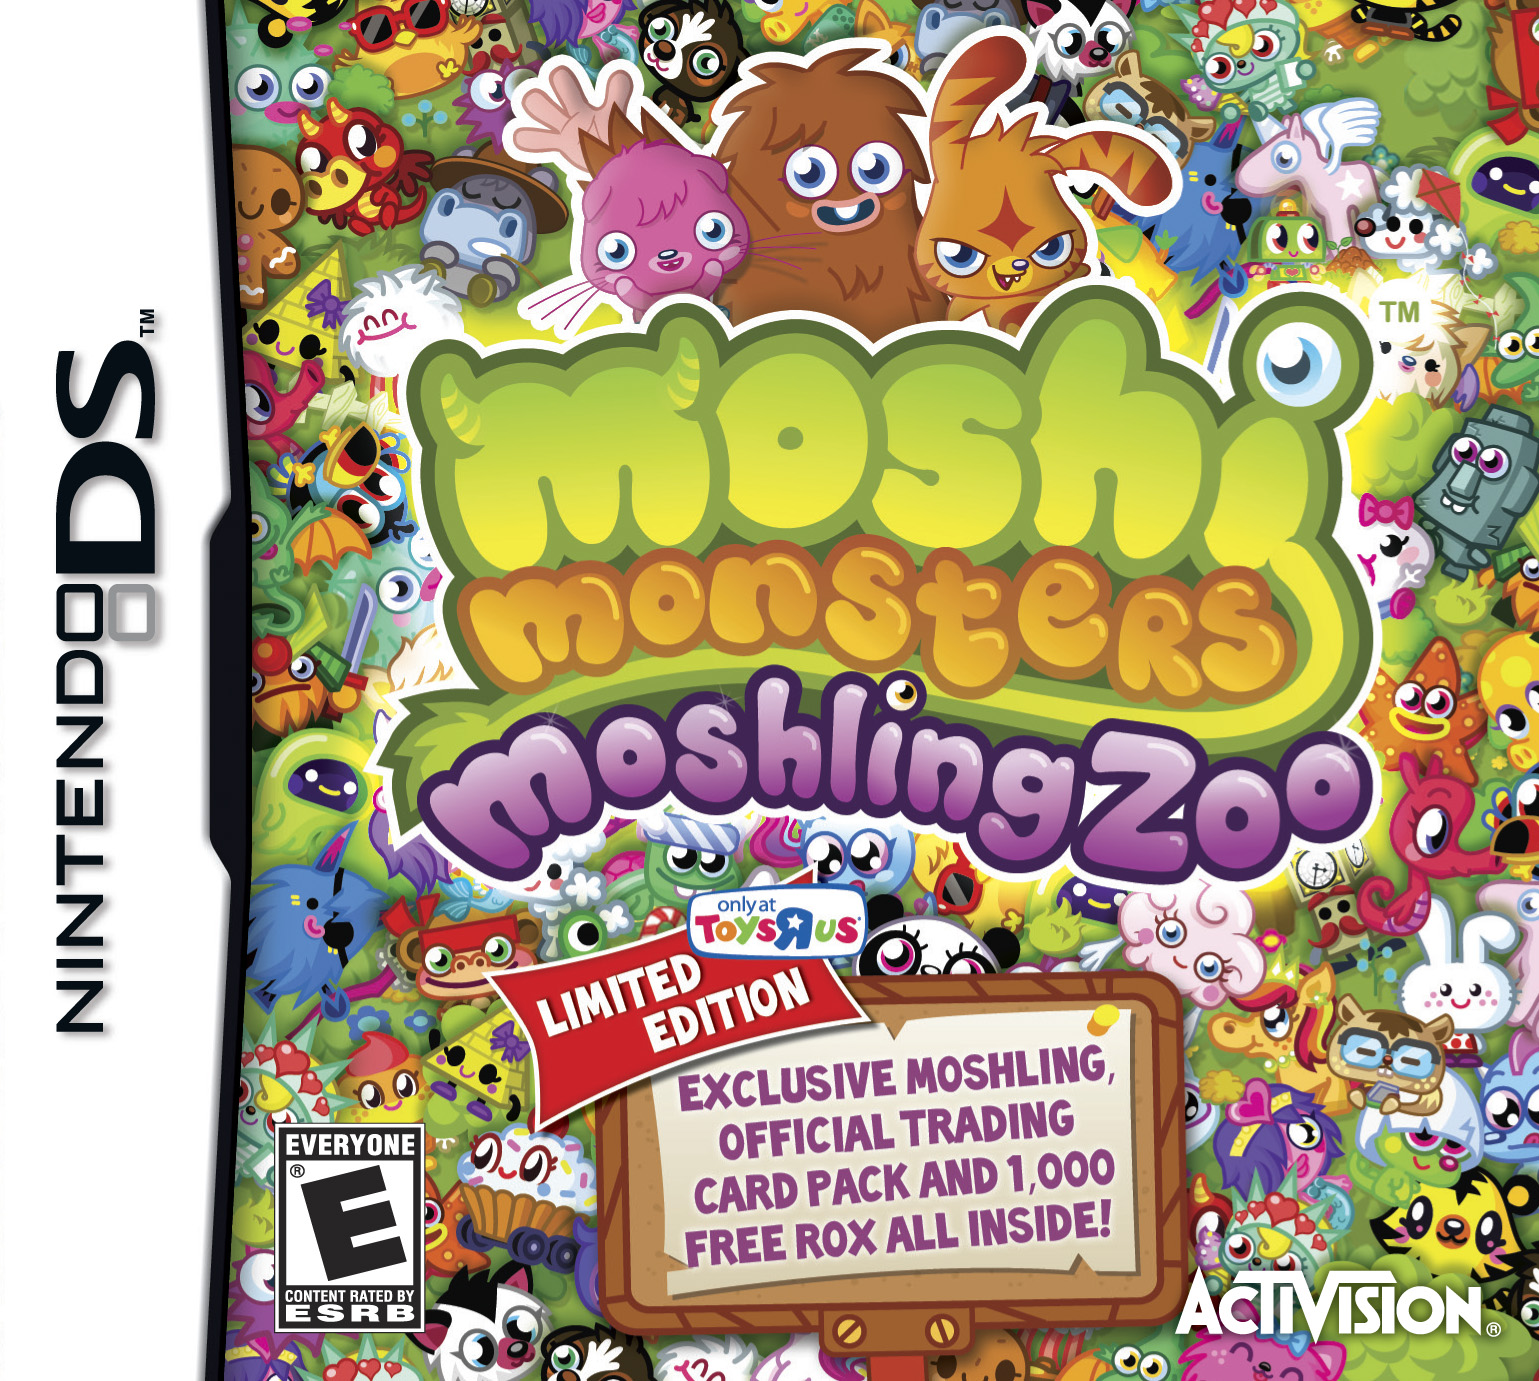 Moshi Monsters Rox Maker